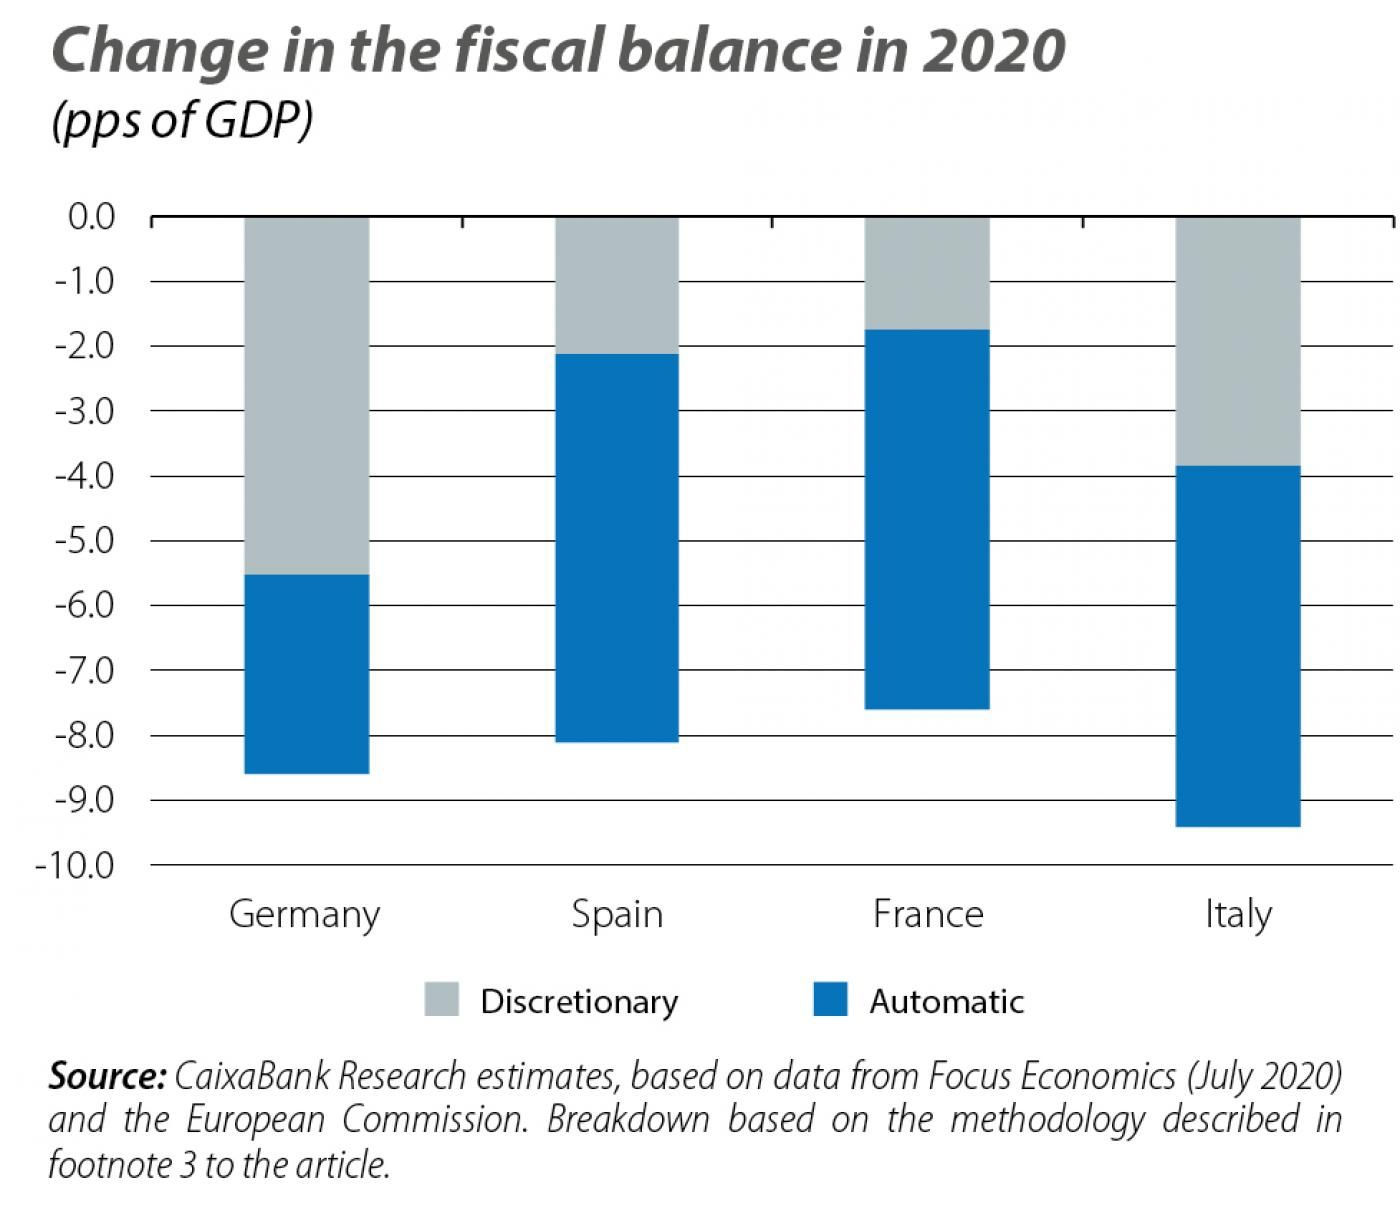 Change in the fiscal balance in 2020